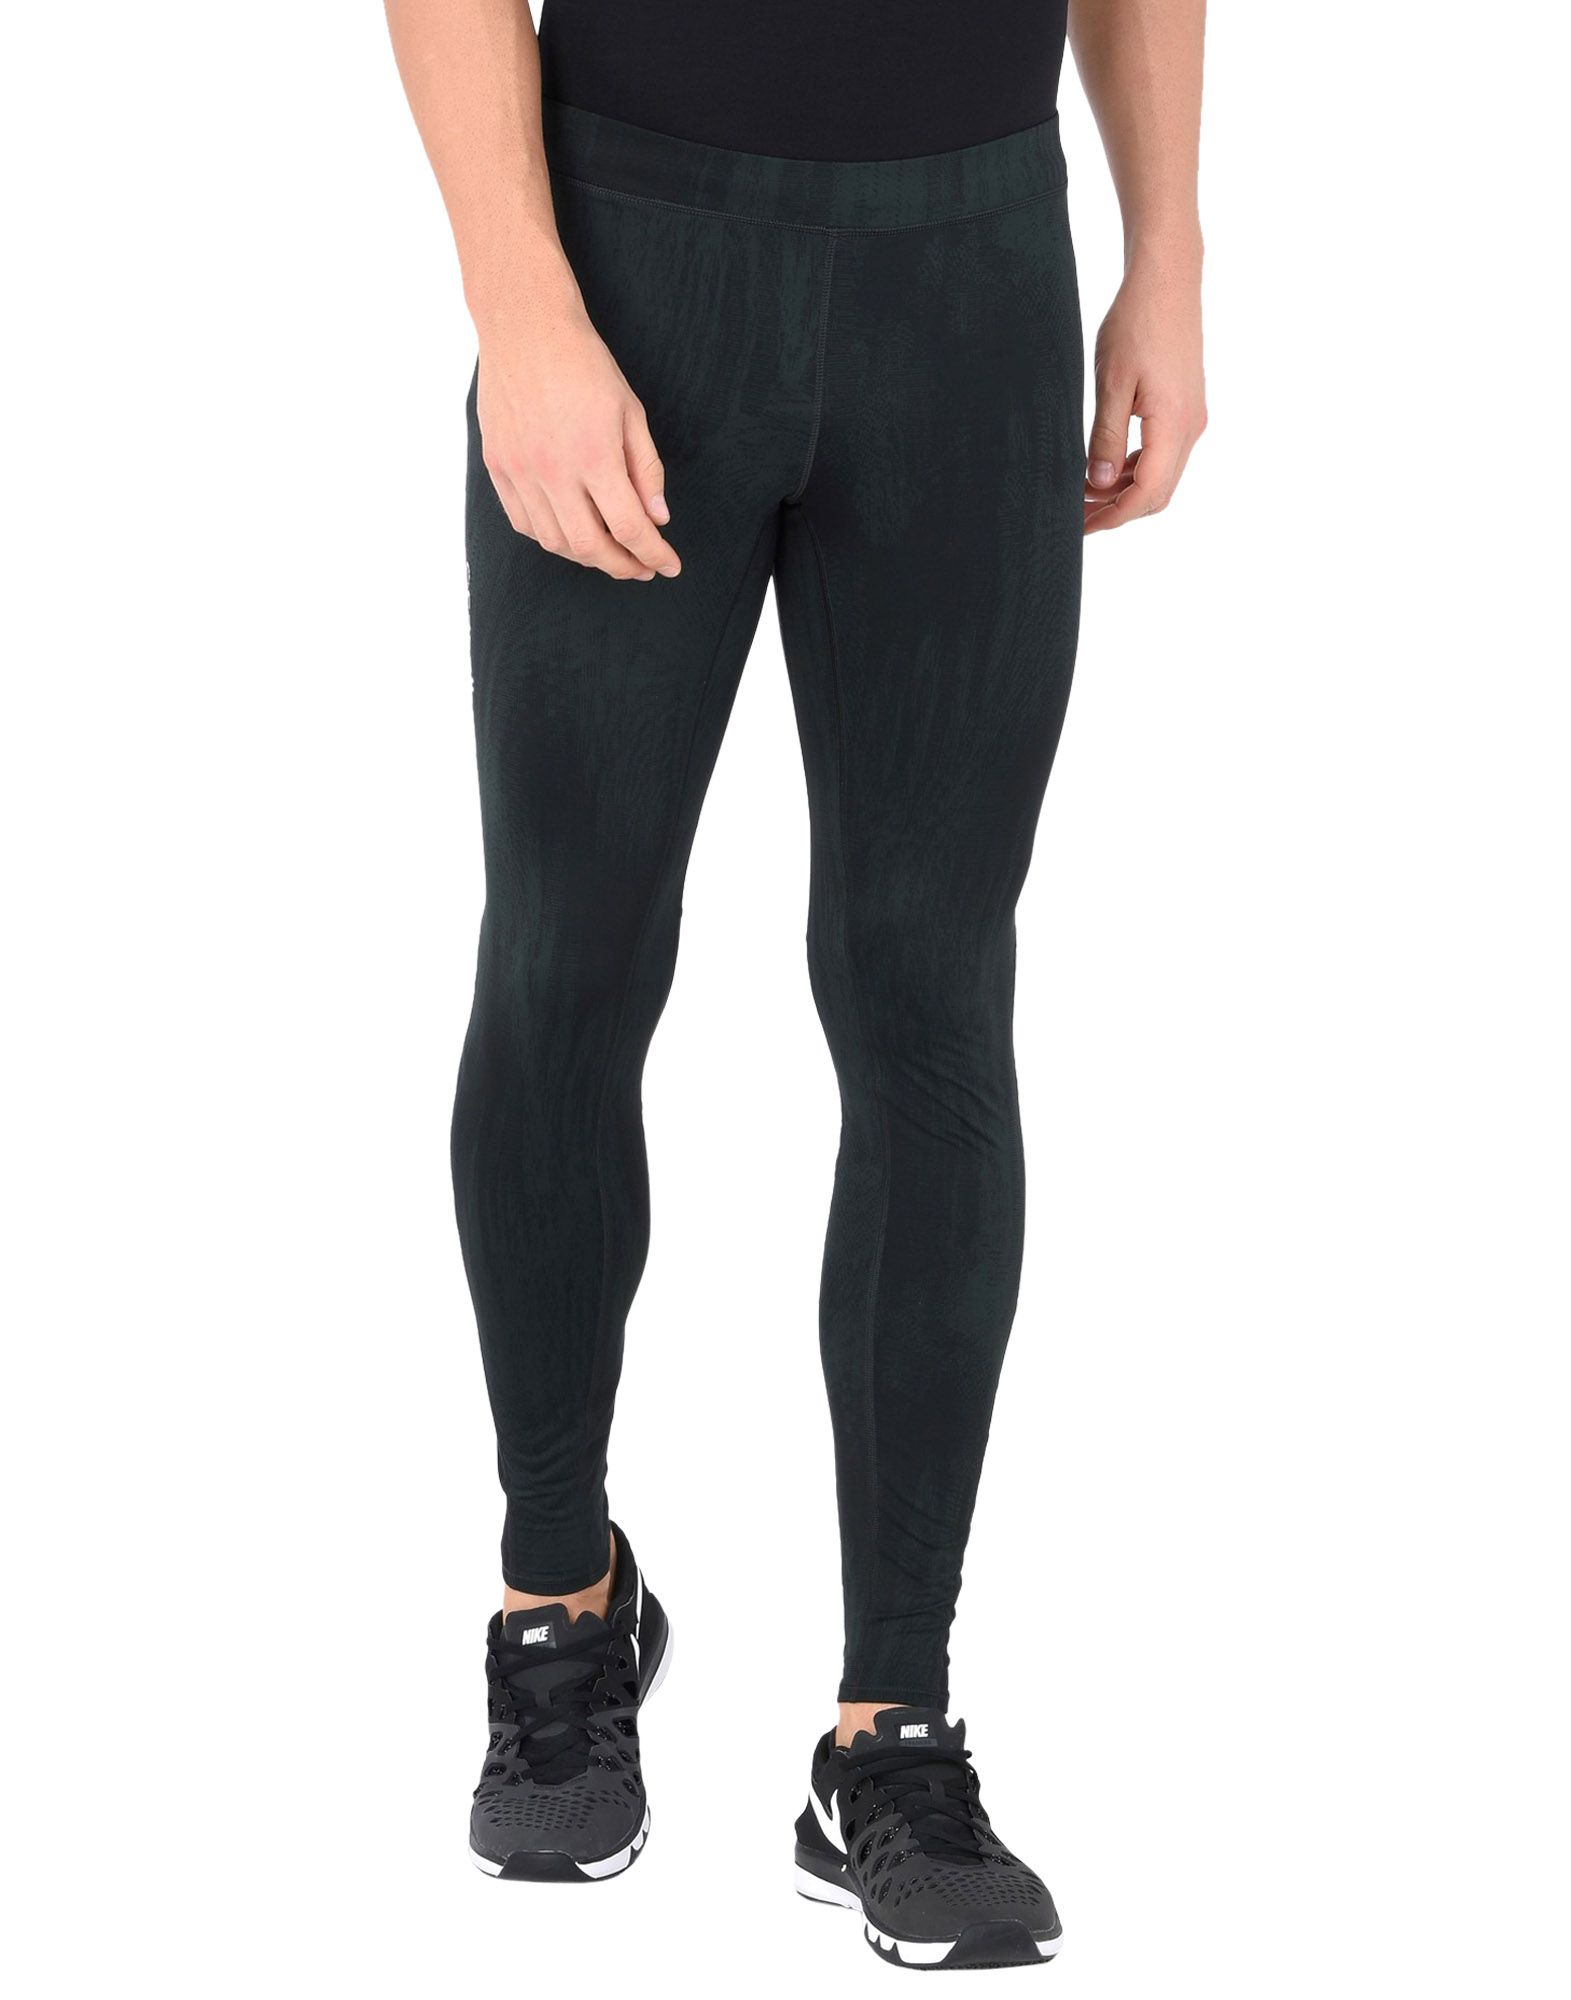 Фото - CASALL Легинсы pro male tight training sweatproof